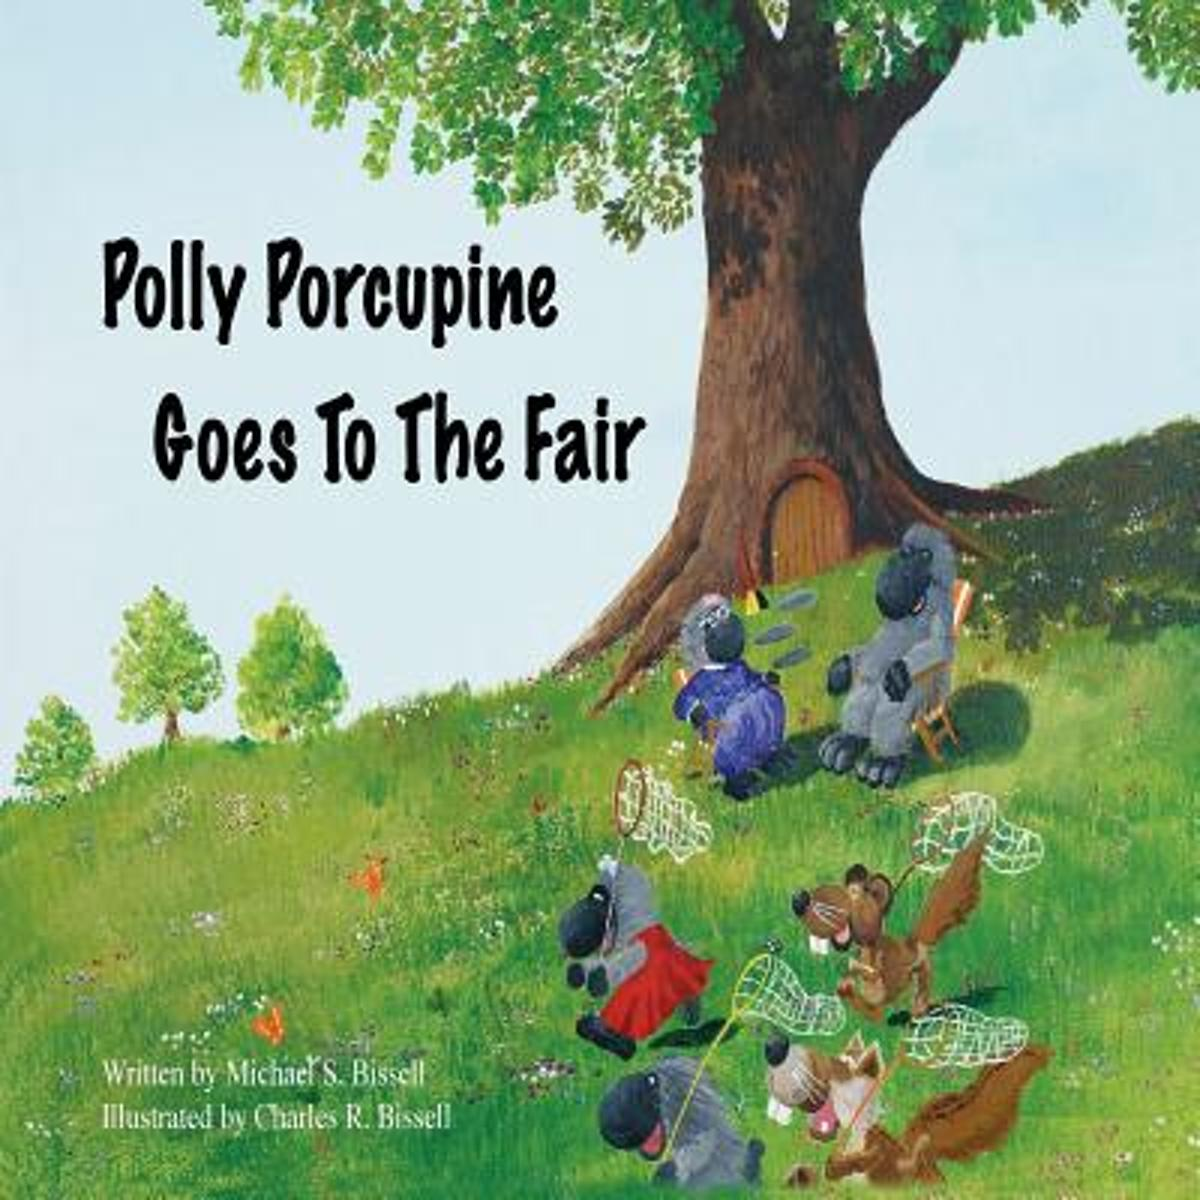 Polly Porcupine Goes To The Fair